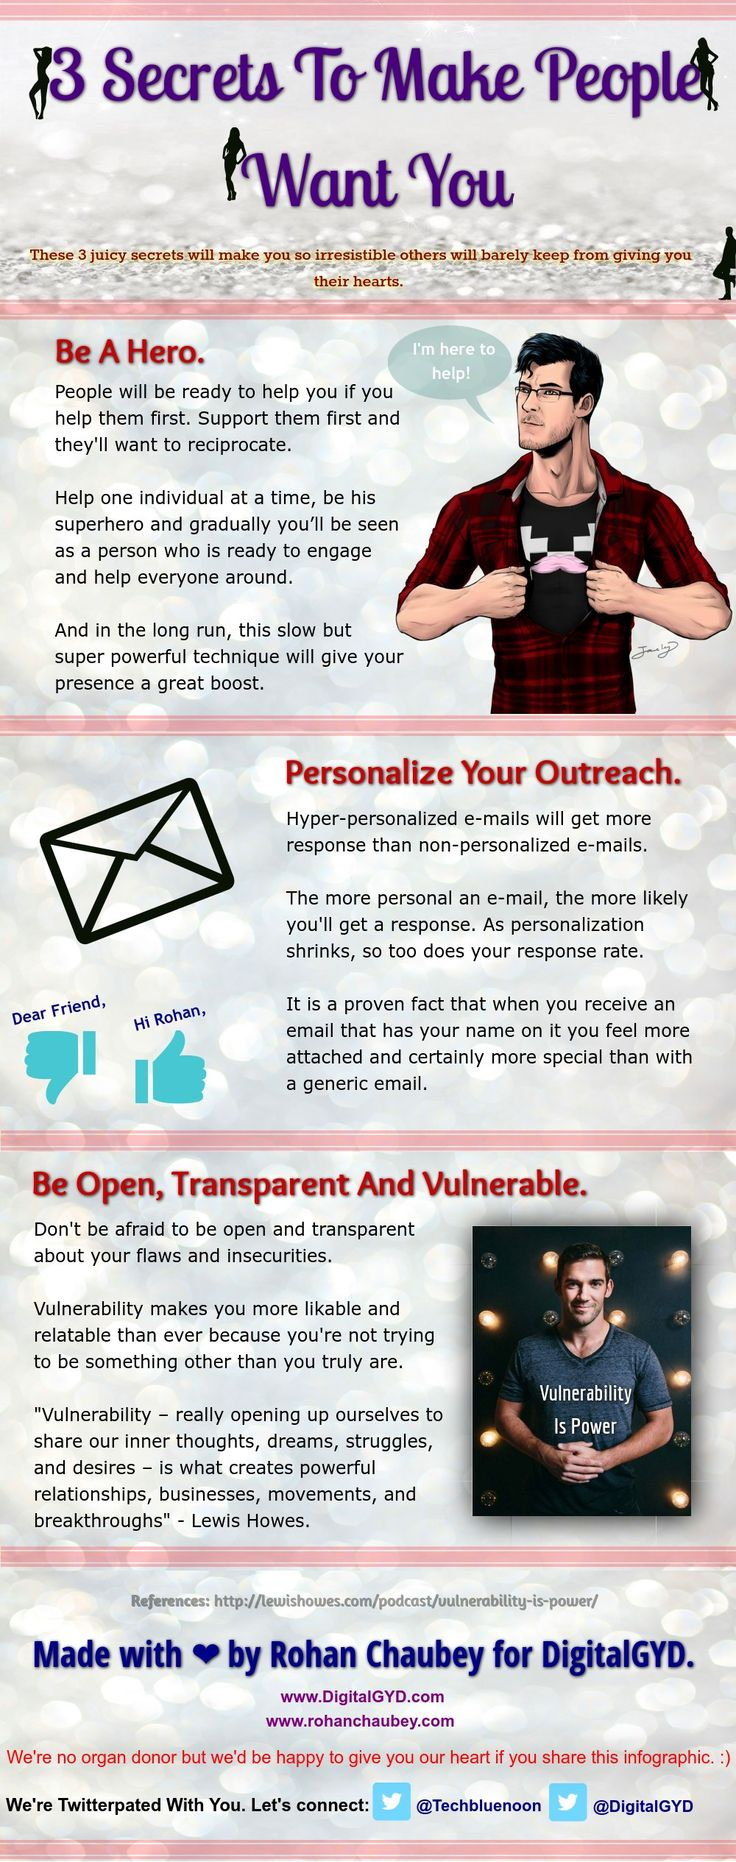 How To Make People Like You. Read it here: http://www.DigitalGYD.com/make-people-like-you-online  This Post includes strategies to get liked for who you are both online and offline world. And help you to make connections, gain leads and more business.   #socialmediatips #motivation #positiveaffirmations #BlogHer15 #BizTips #bizHour #smallbiztips #smallbusiness #marketing #socialmediamarketing